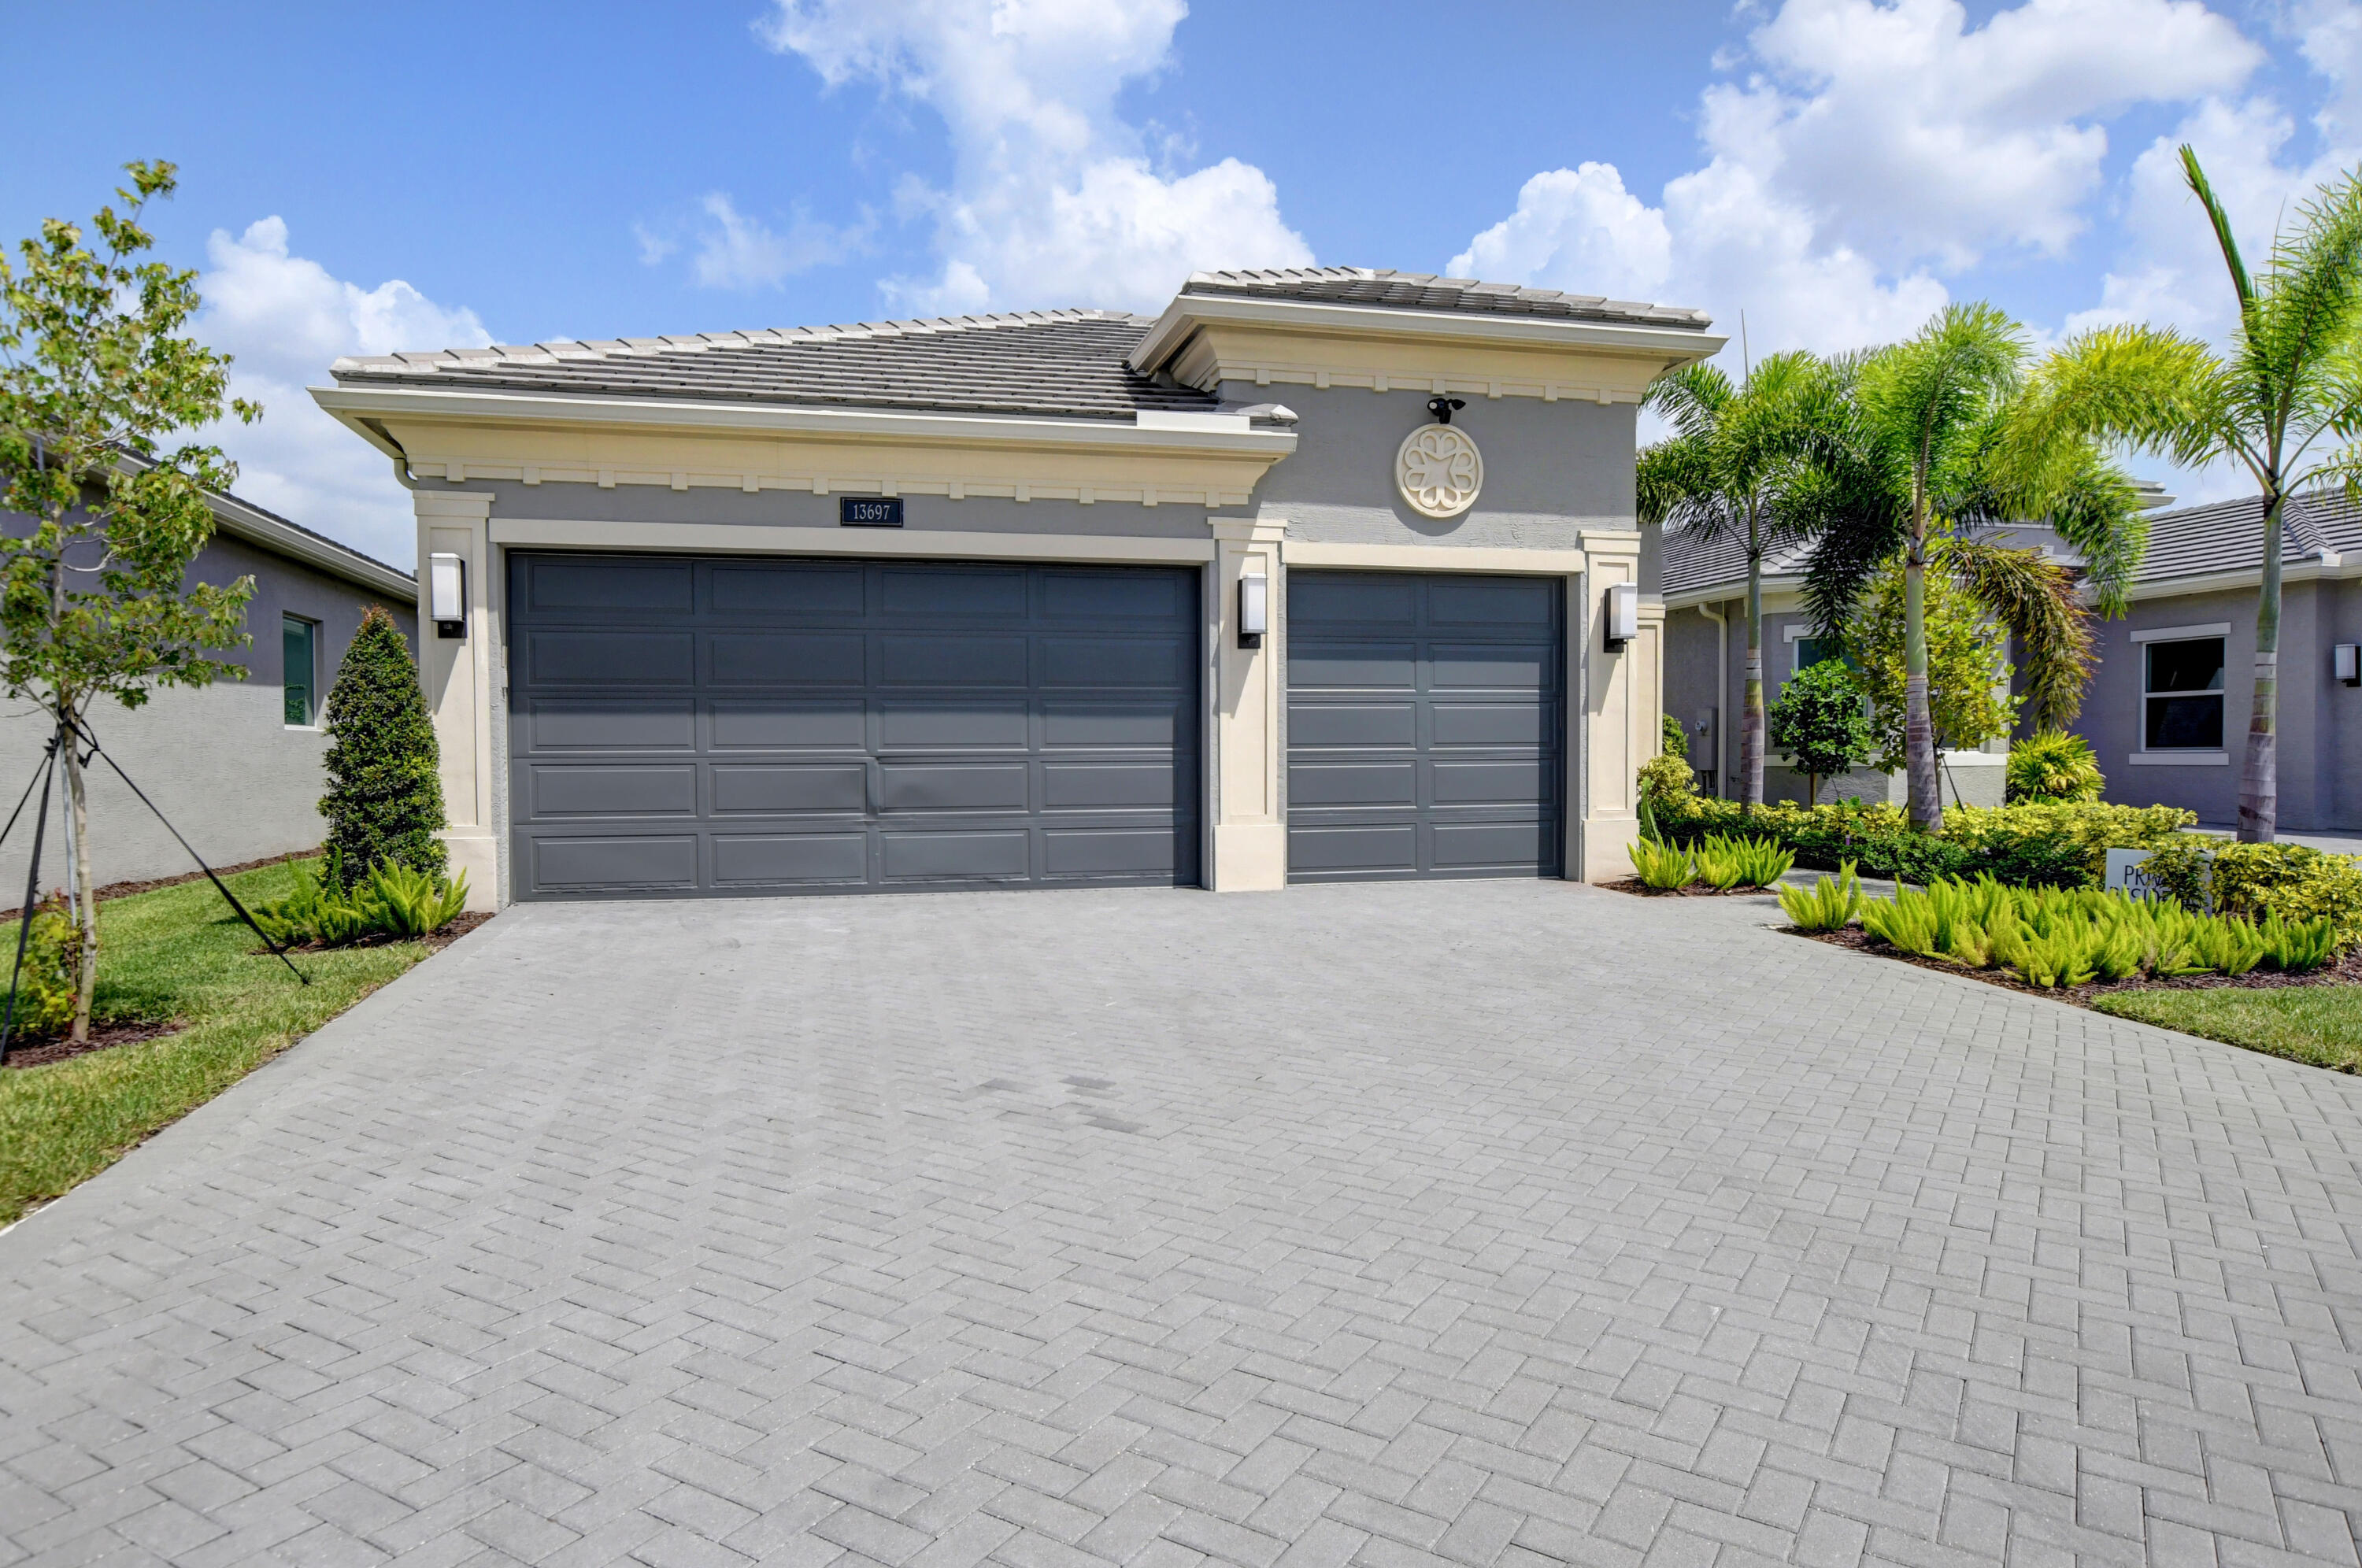 Home for sale in Gl Homes Delray Beach Florida